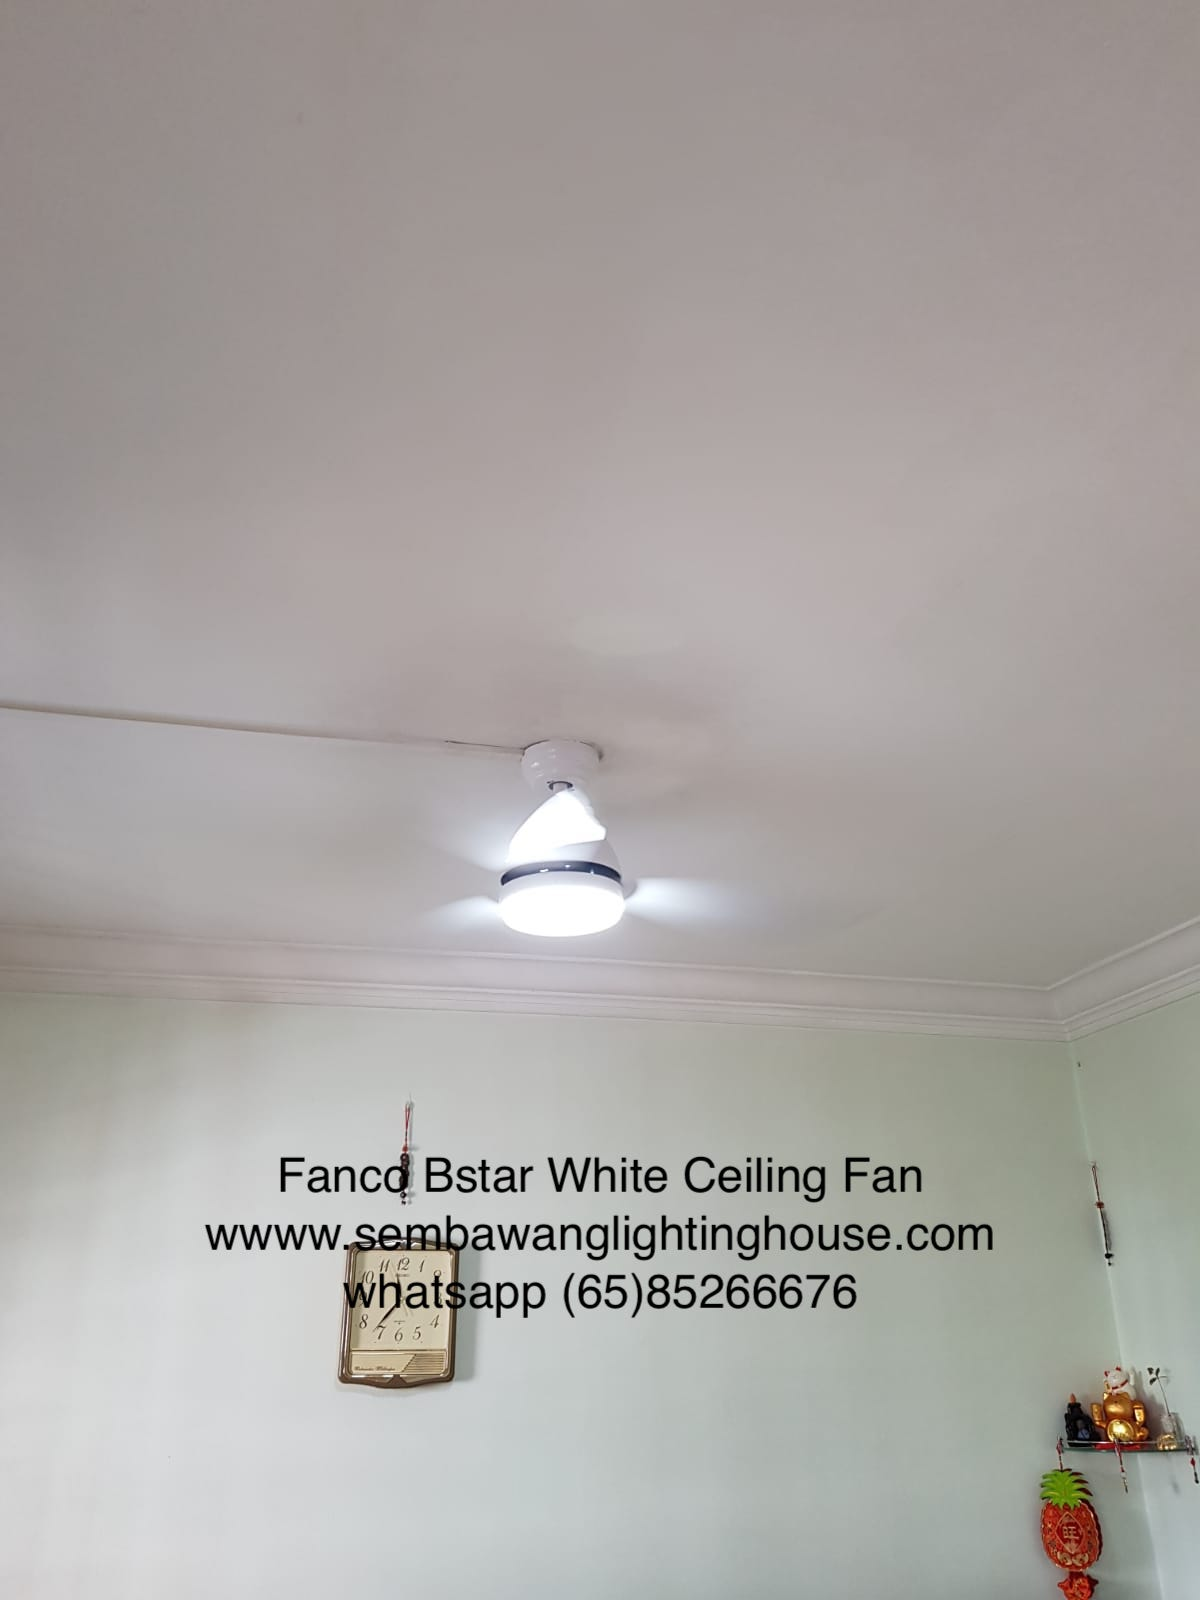 fanco-bstar-white-ceiling-fan-sample-hdb-dining-room-sembawang-lighting-house-03.jpg